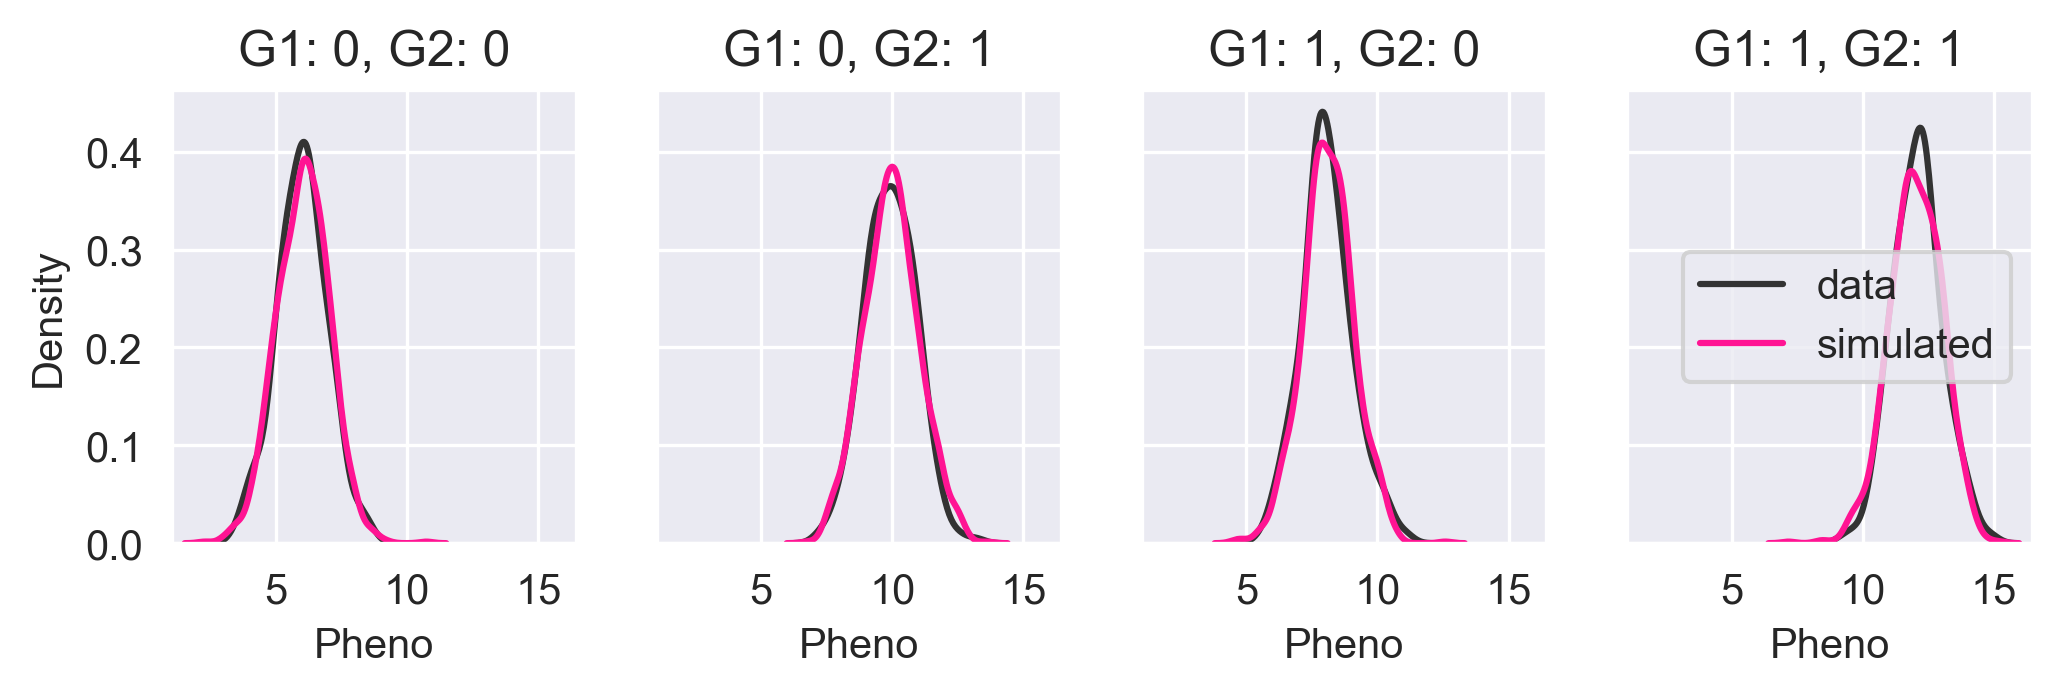 Core simulated data versus the observed data